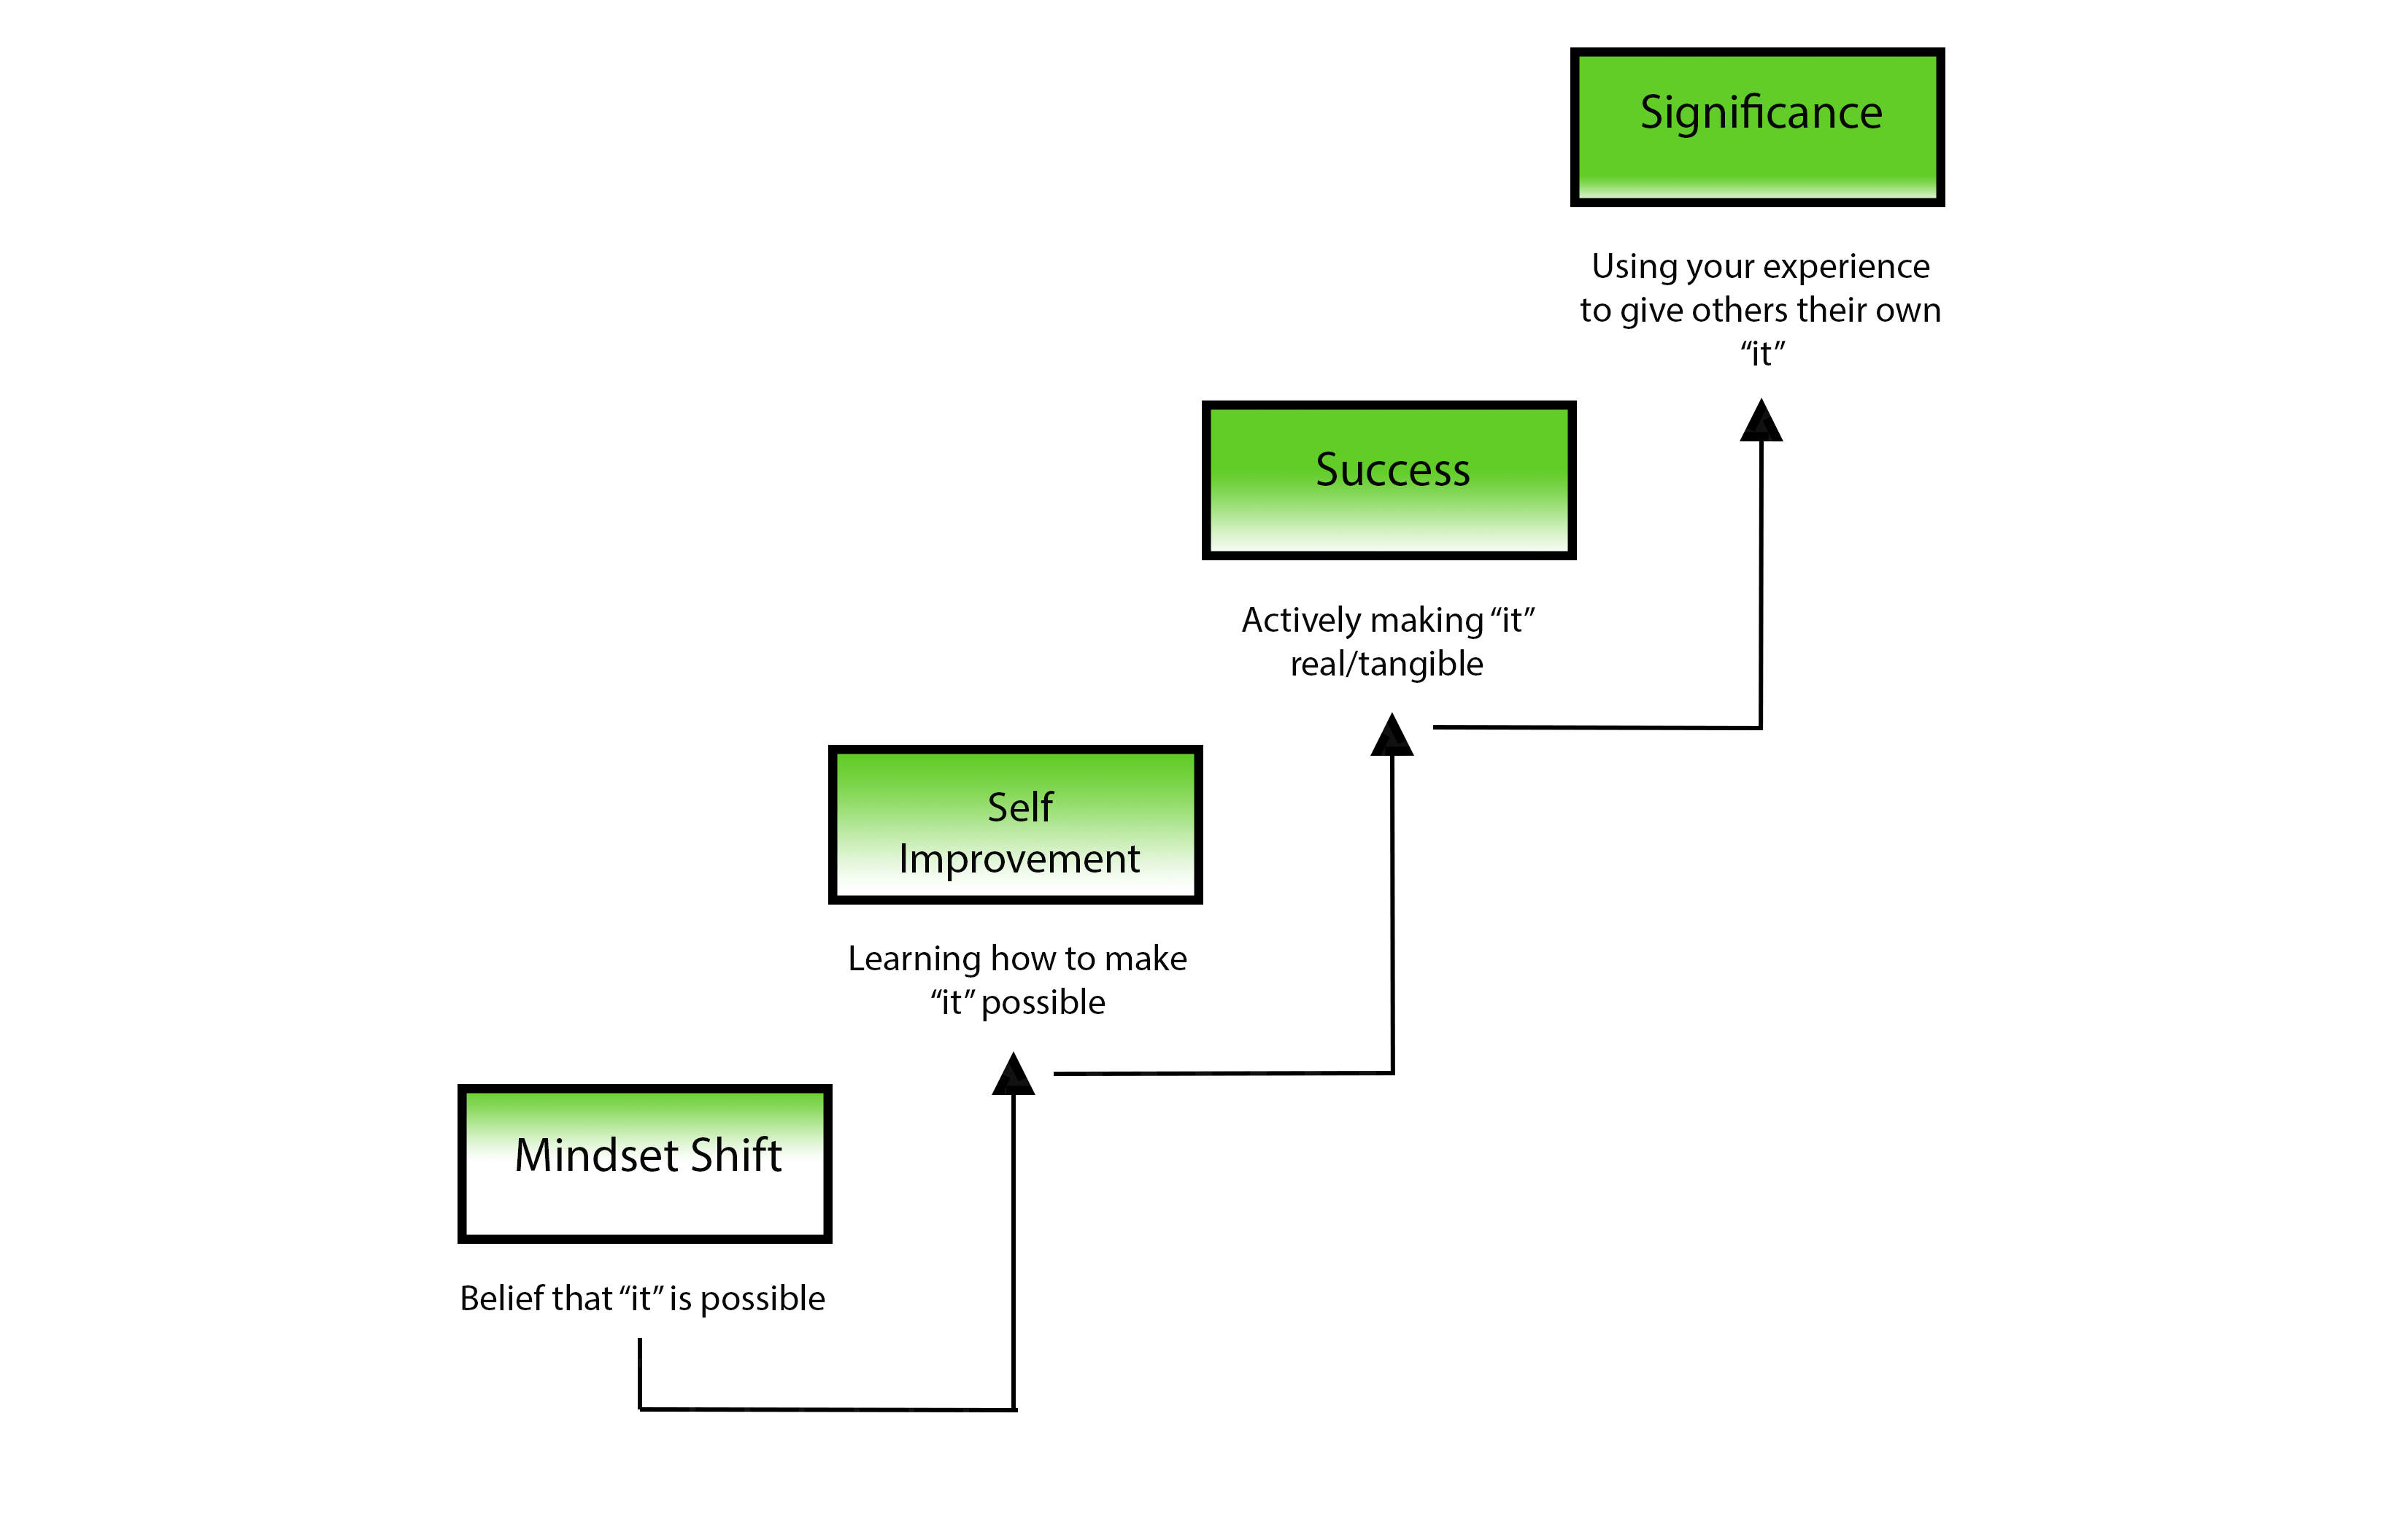 4Steps - 4 Steps to Significance